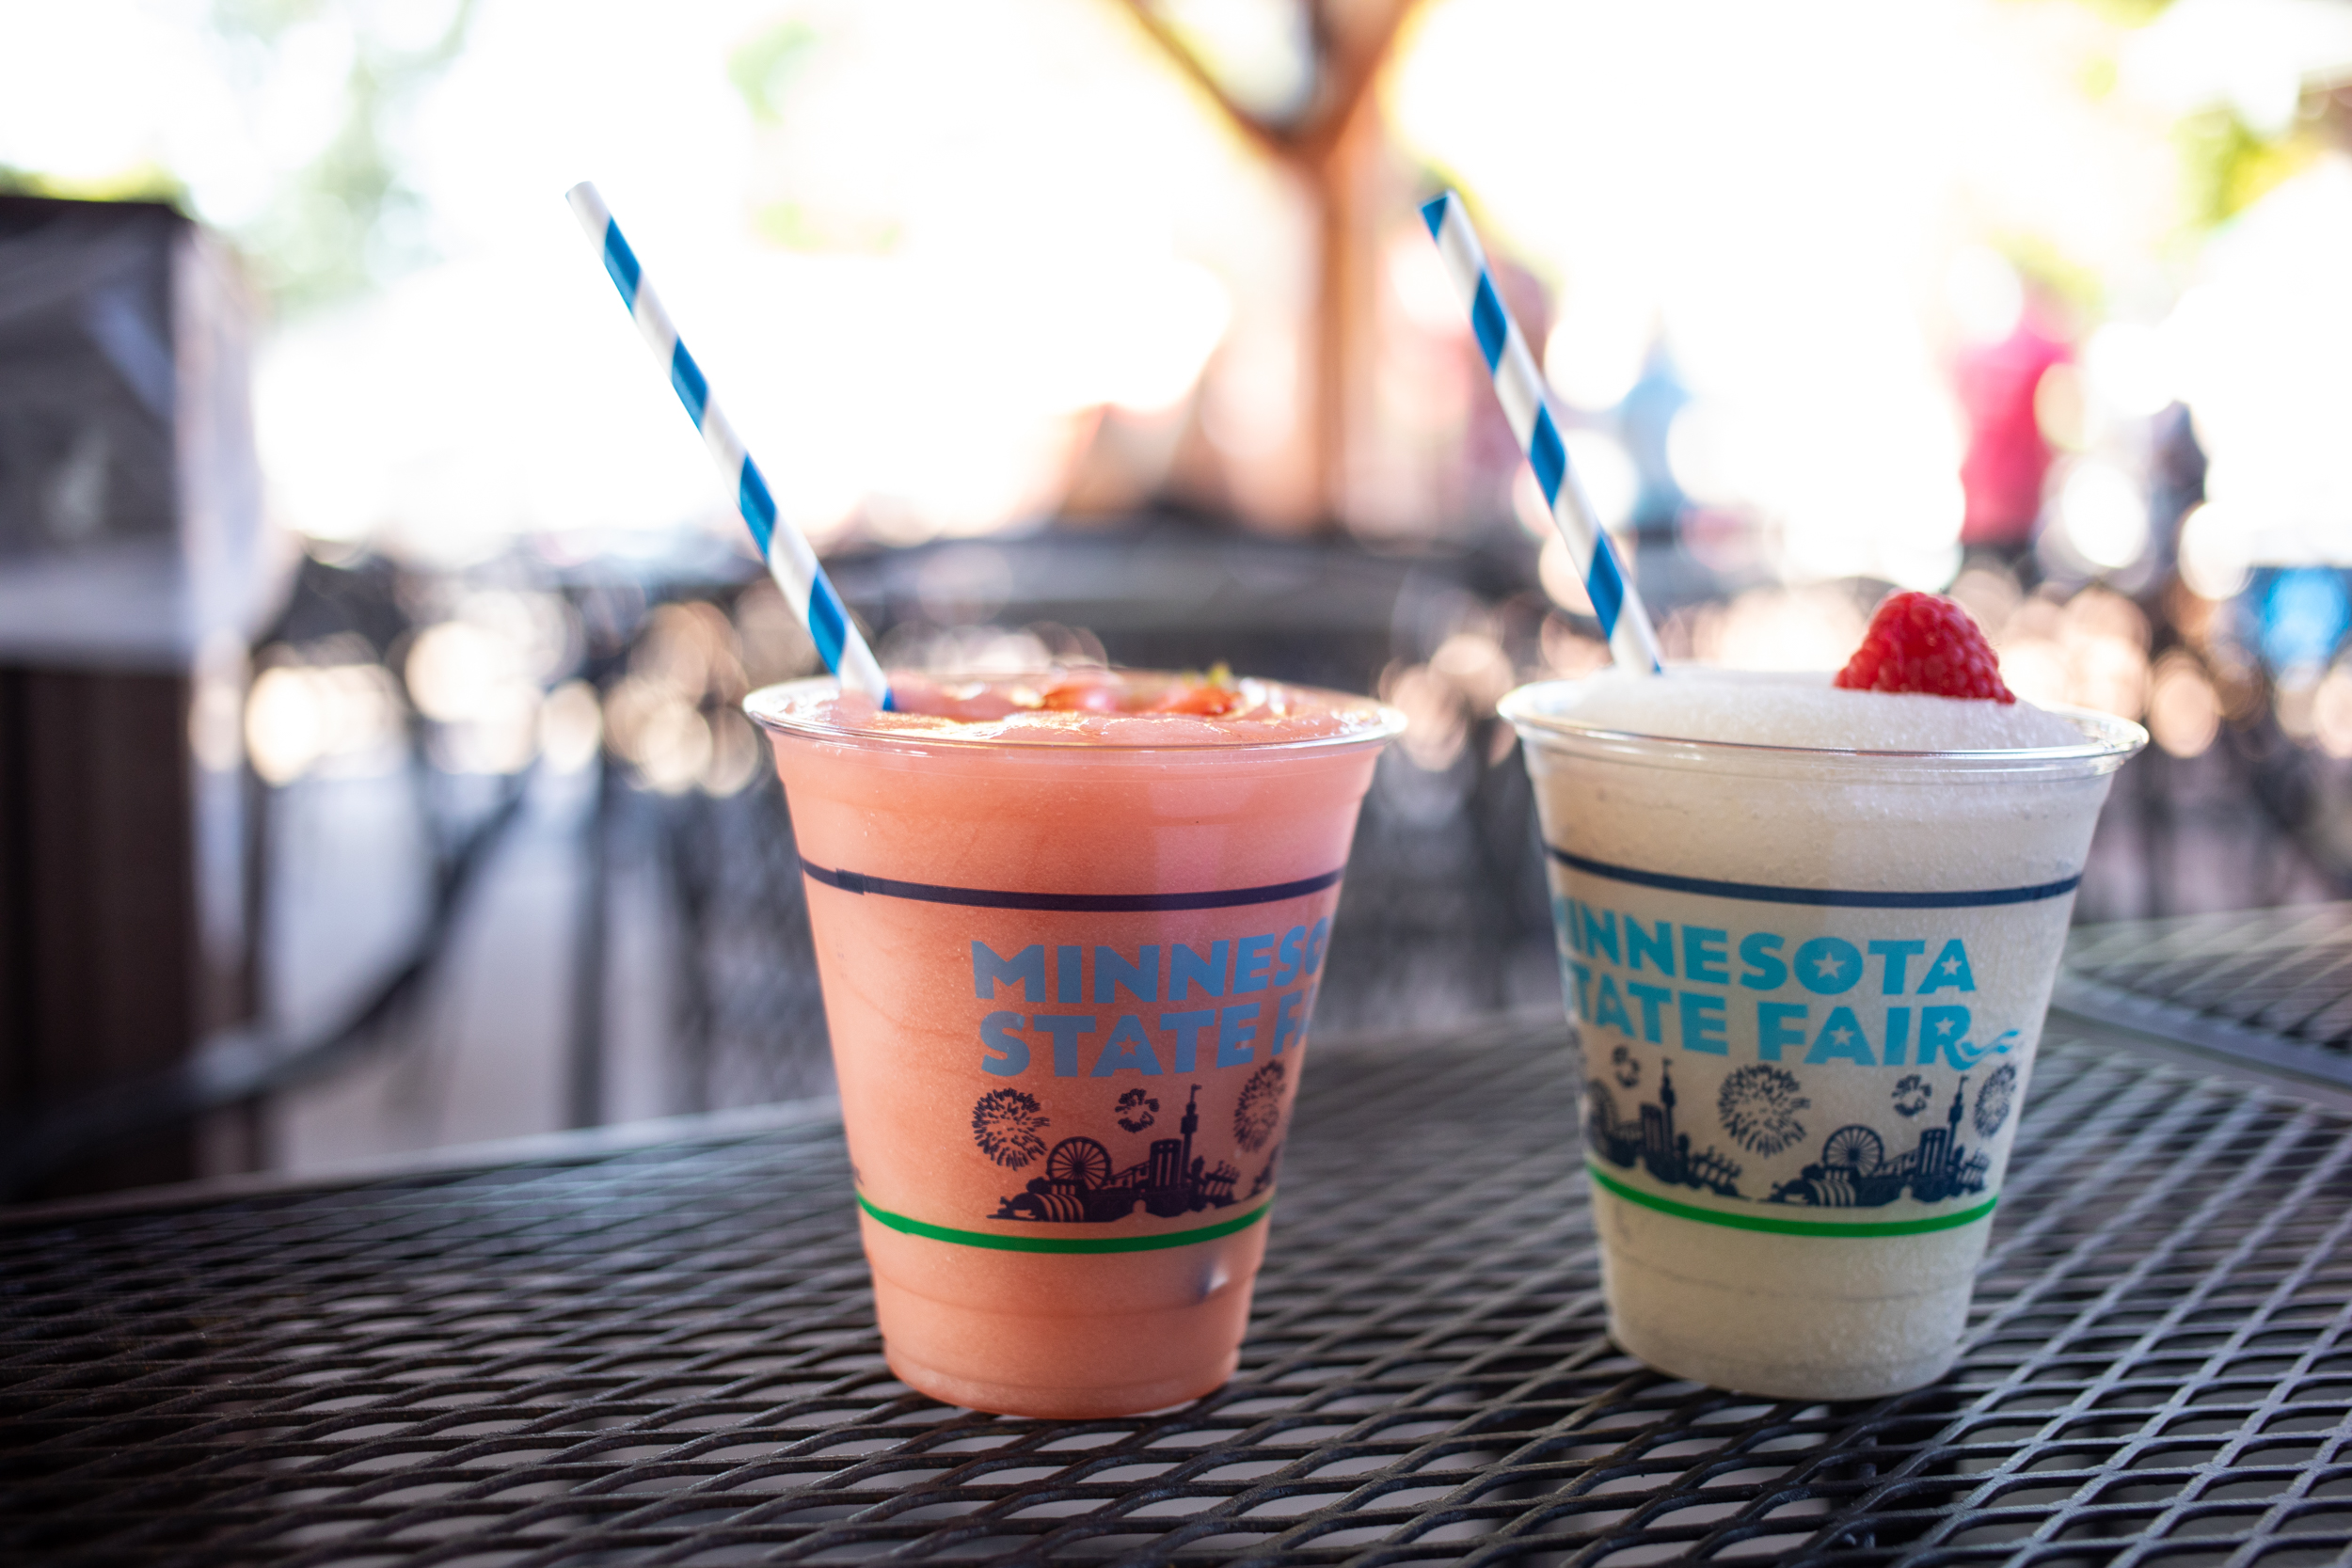 Frozen wine drinks will be back on the menu at the 2021 Minnesota State Fair • Photo by Tj Turner